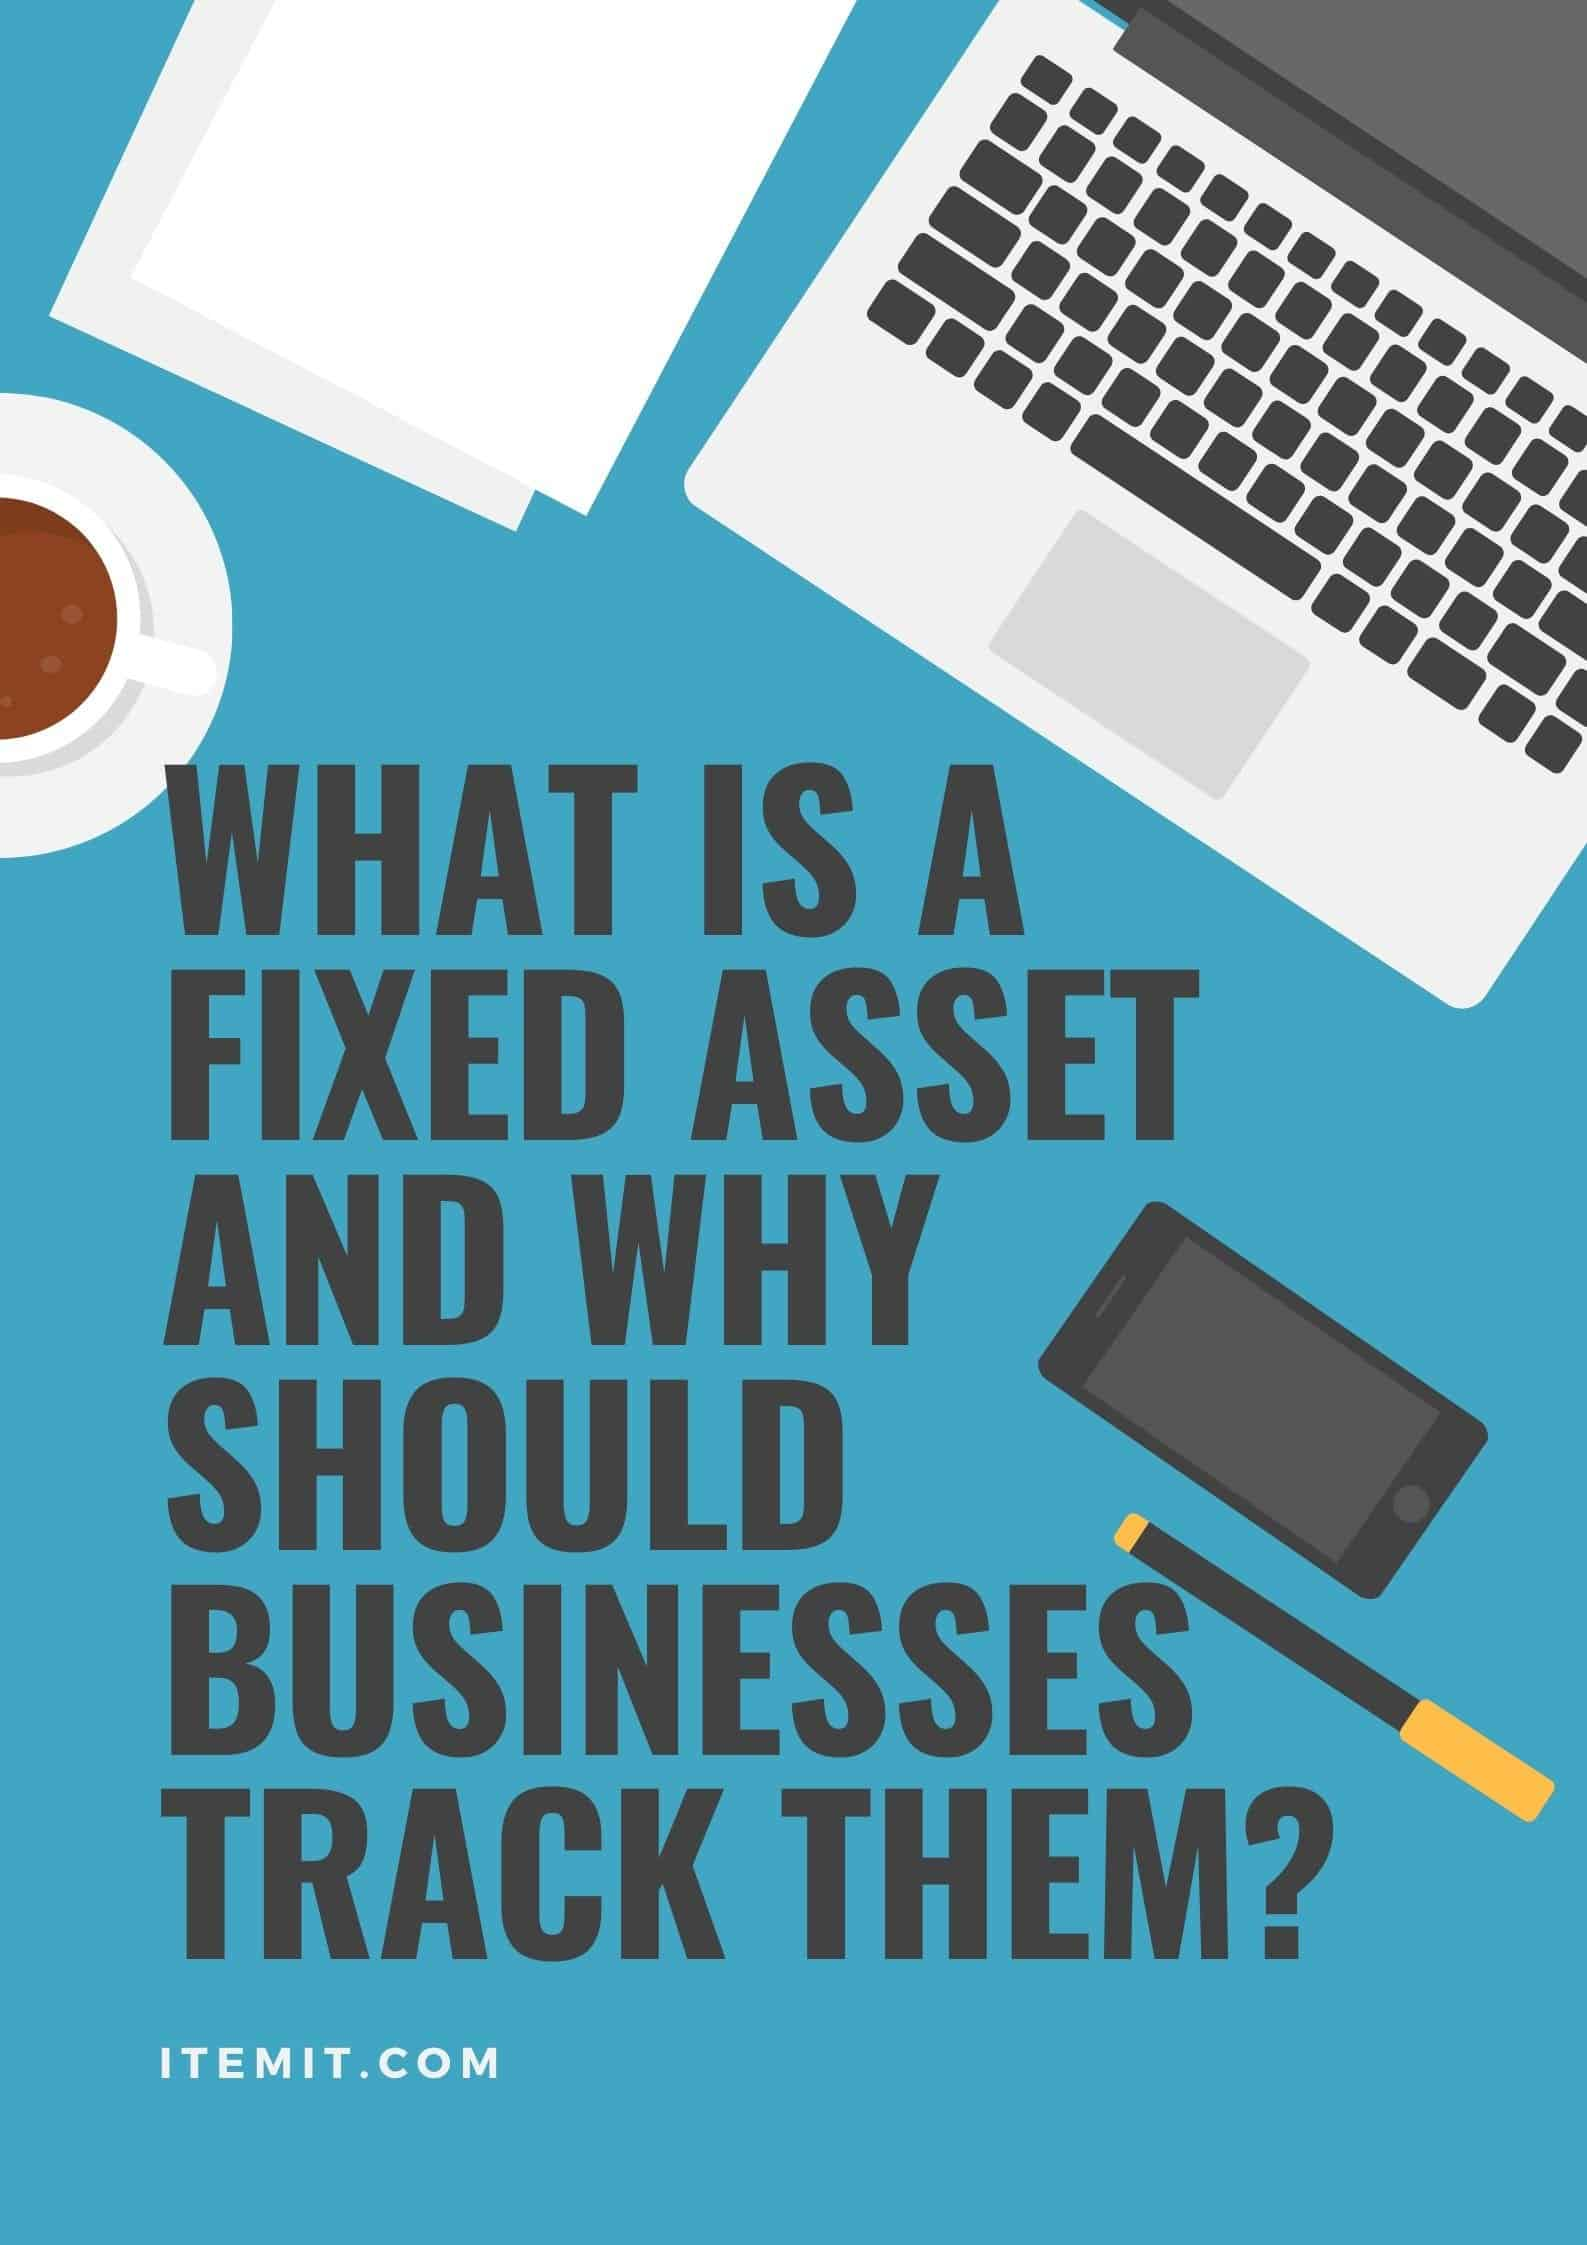 what is a fixed asset and why should businesses track them?